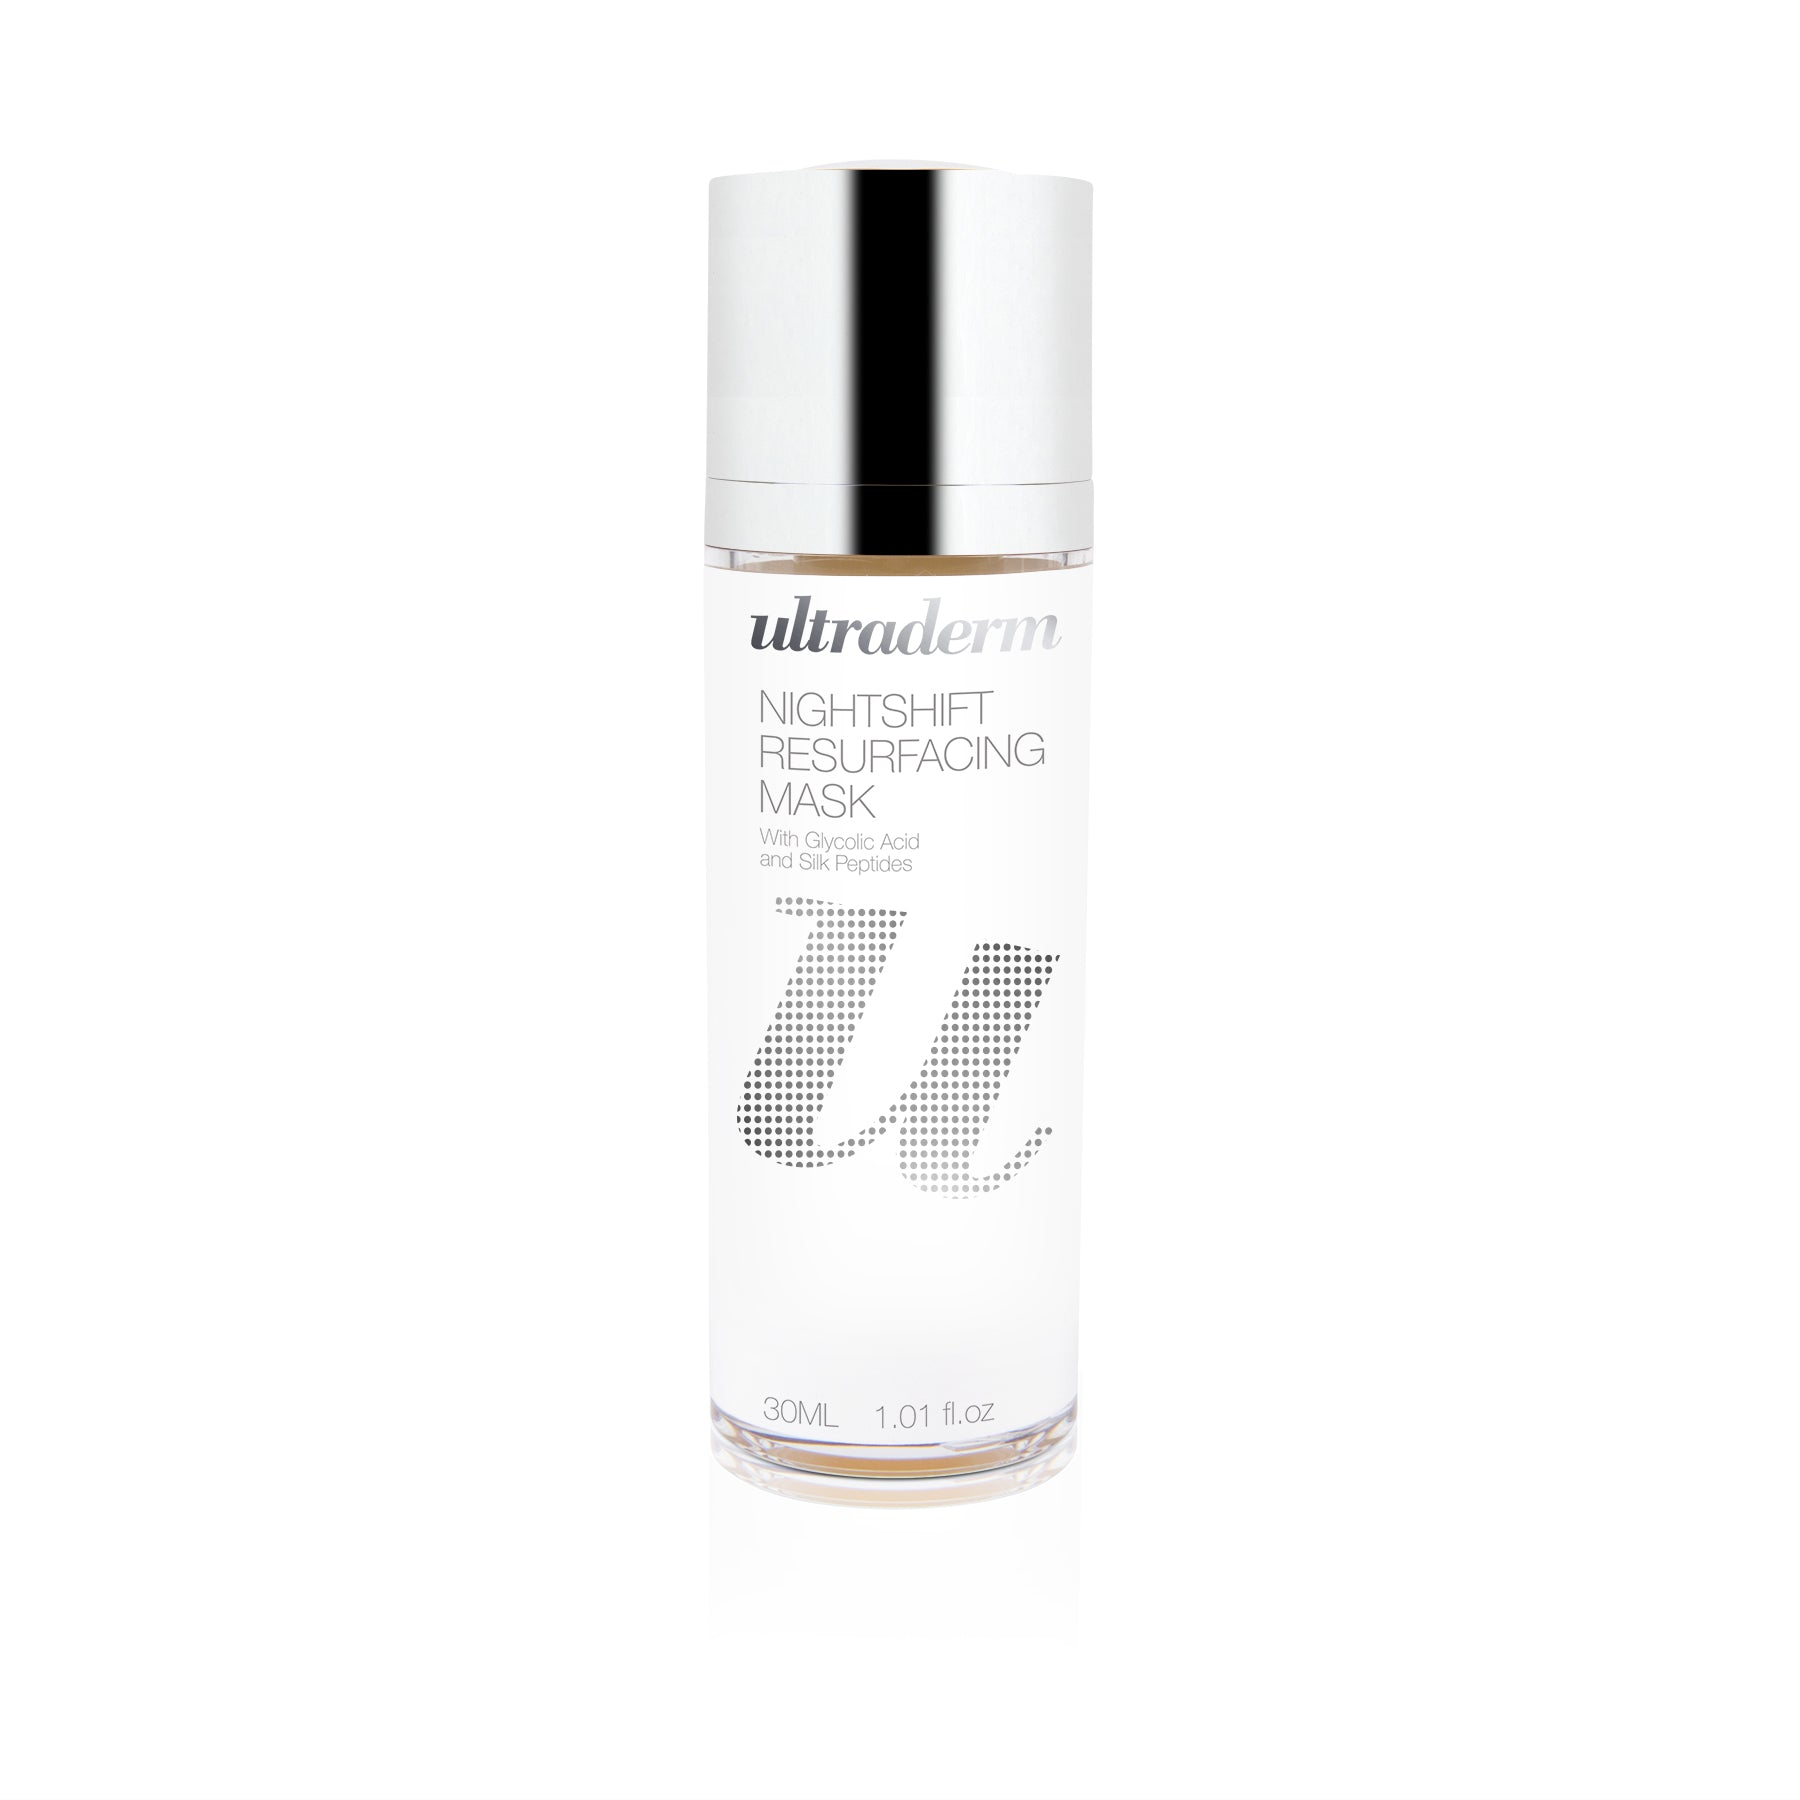 Ultraderm Nightshift Resurfacing Mask, Glycolic AHA Overnight Resurfacing Sleep Mask